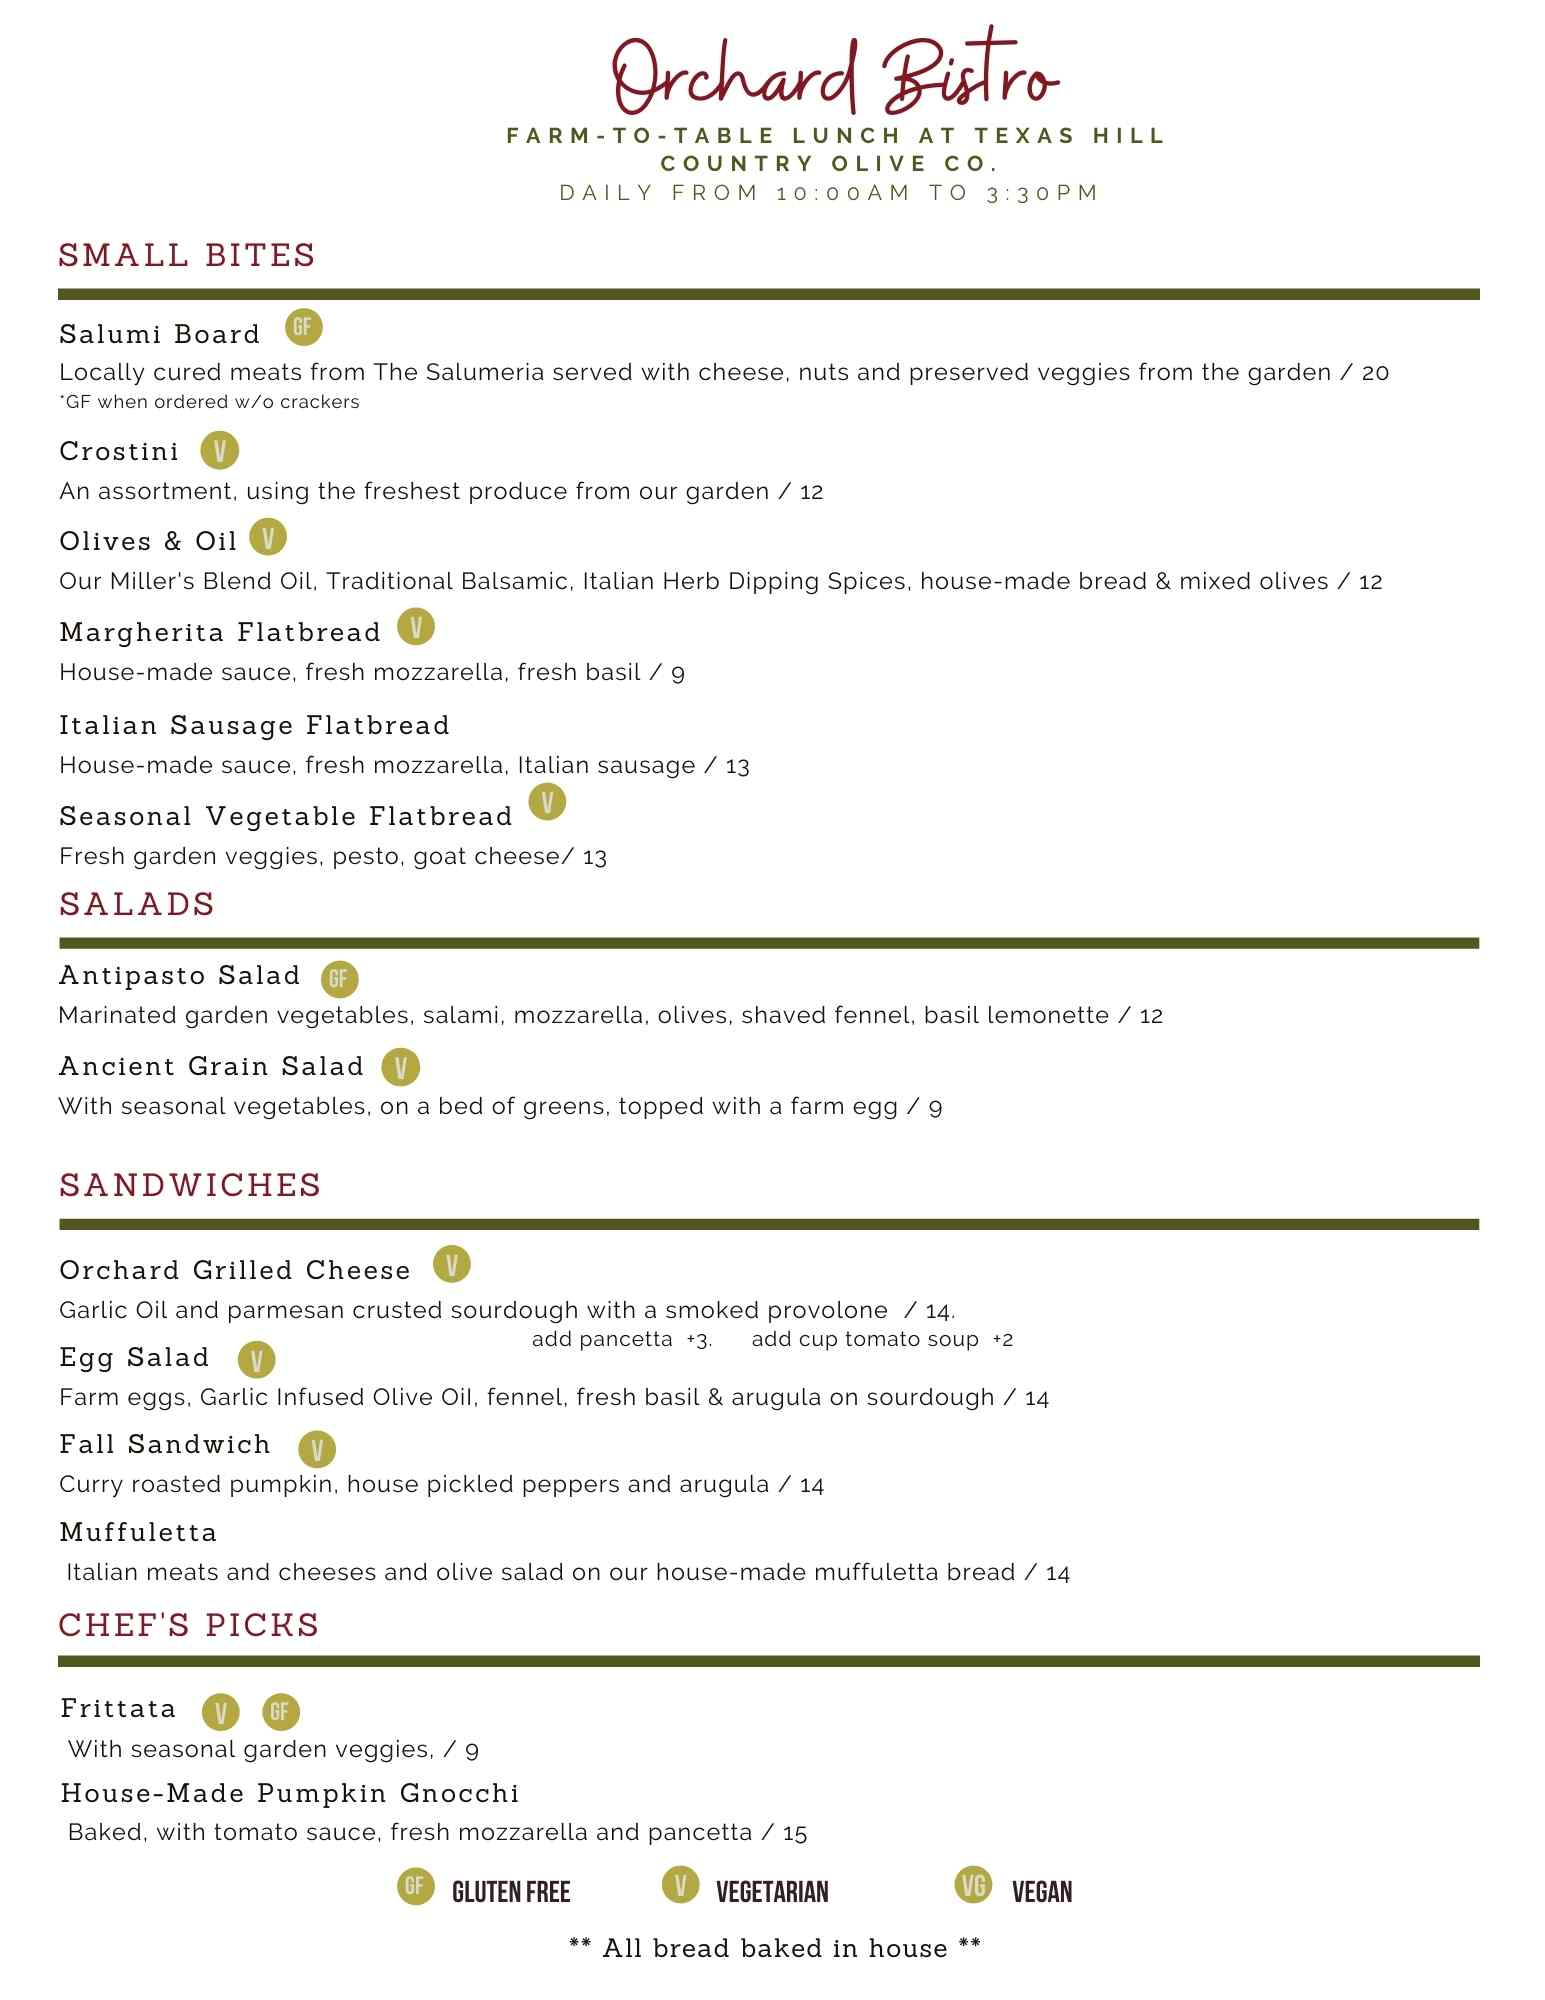 Fall 2021 Bistro menu - restaurant menu - texas olive oil | Texas Hill Country Olive Co.